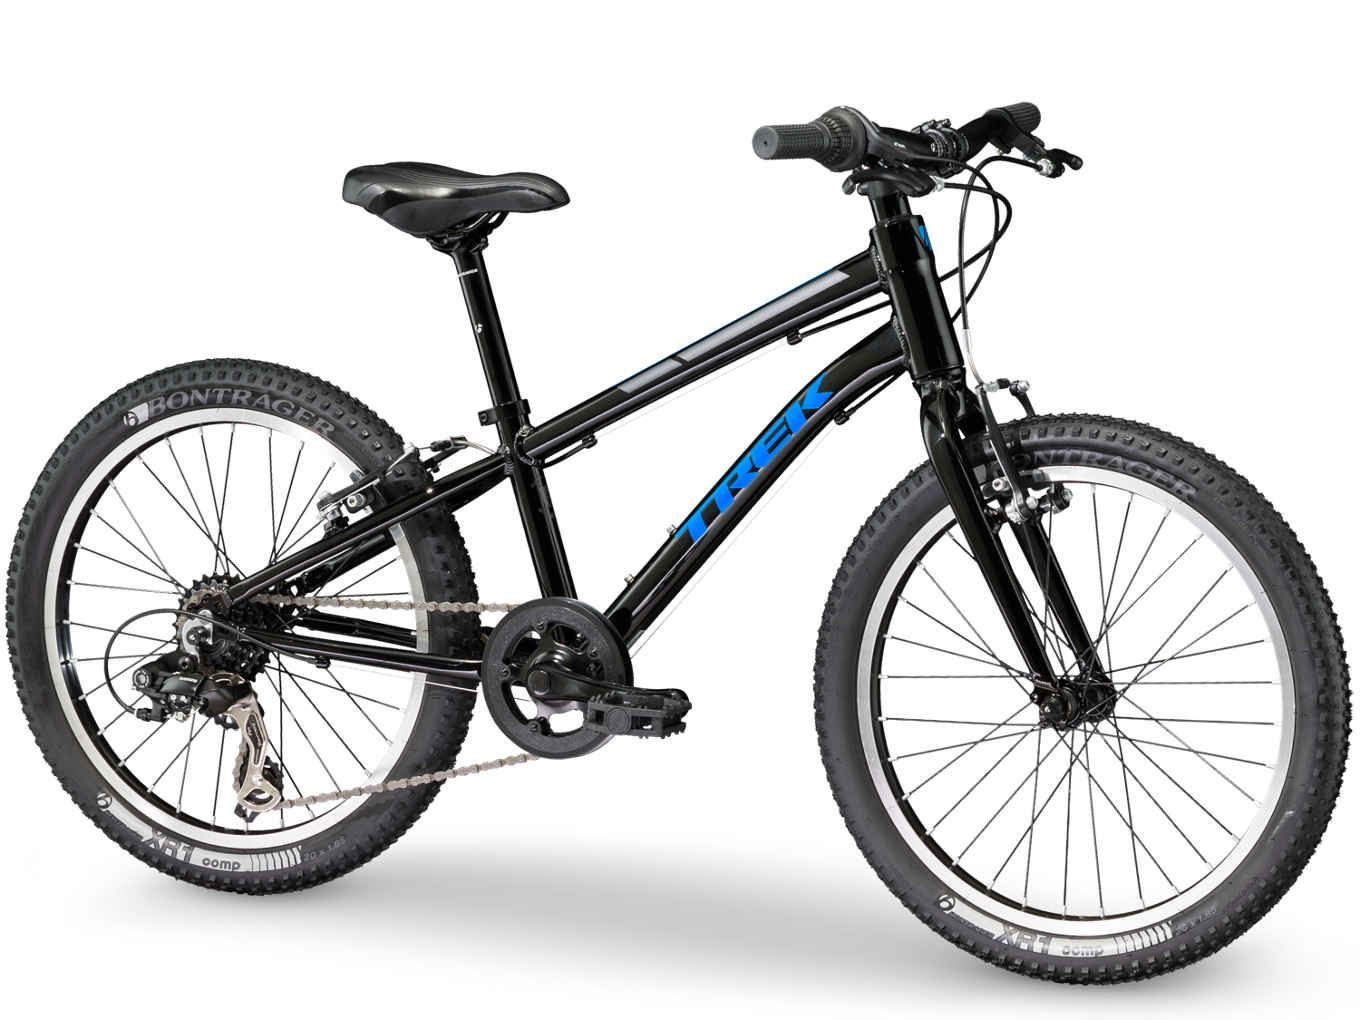 Superfly 20 Trek Bikes Trek Bikes Kids Mountain Bikes Bike